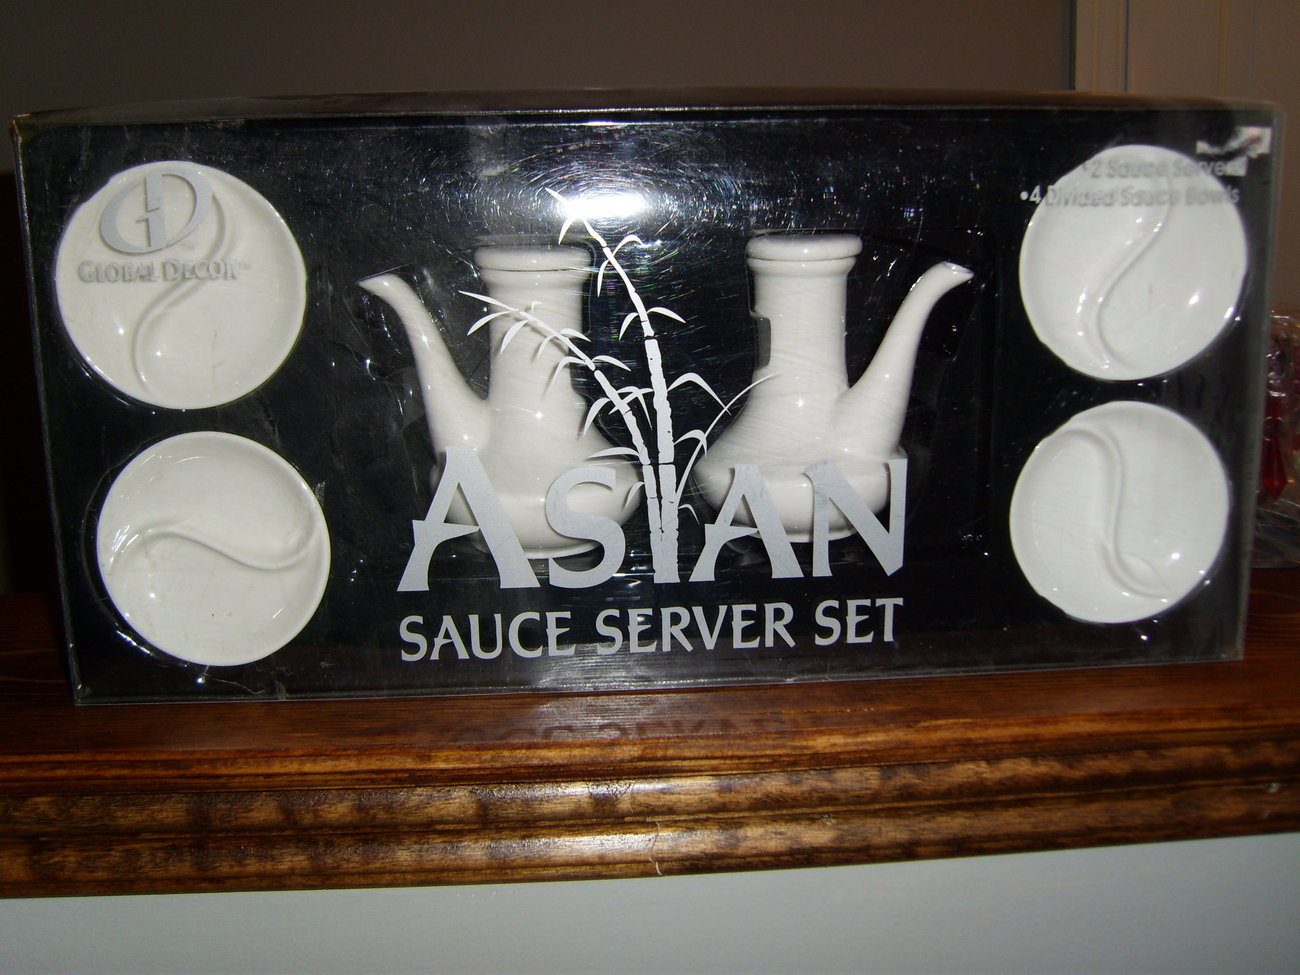 Global Decor asian sauce server set in white new in box